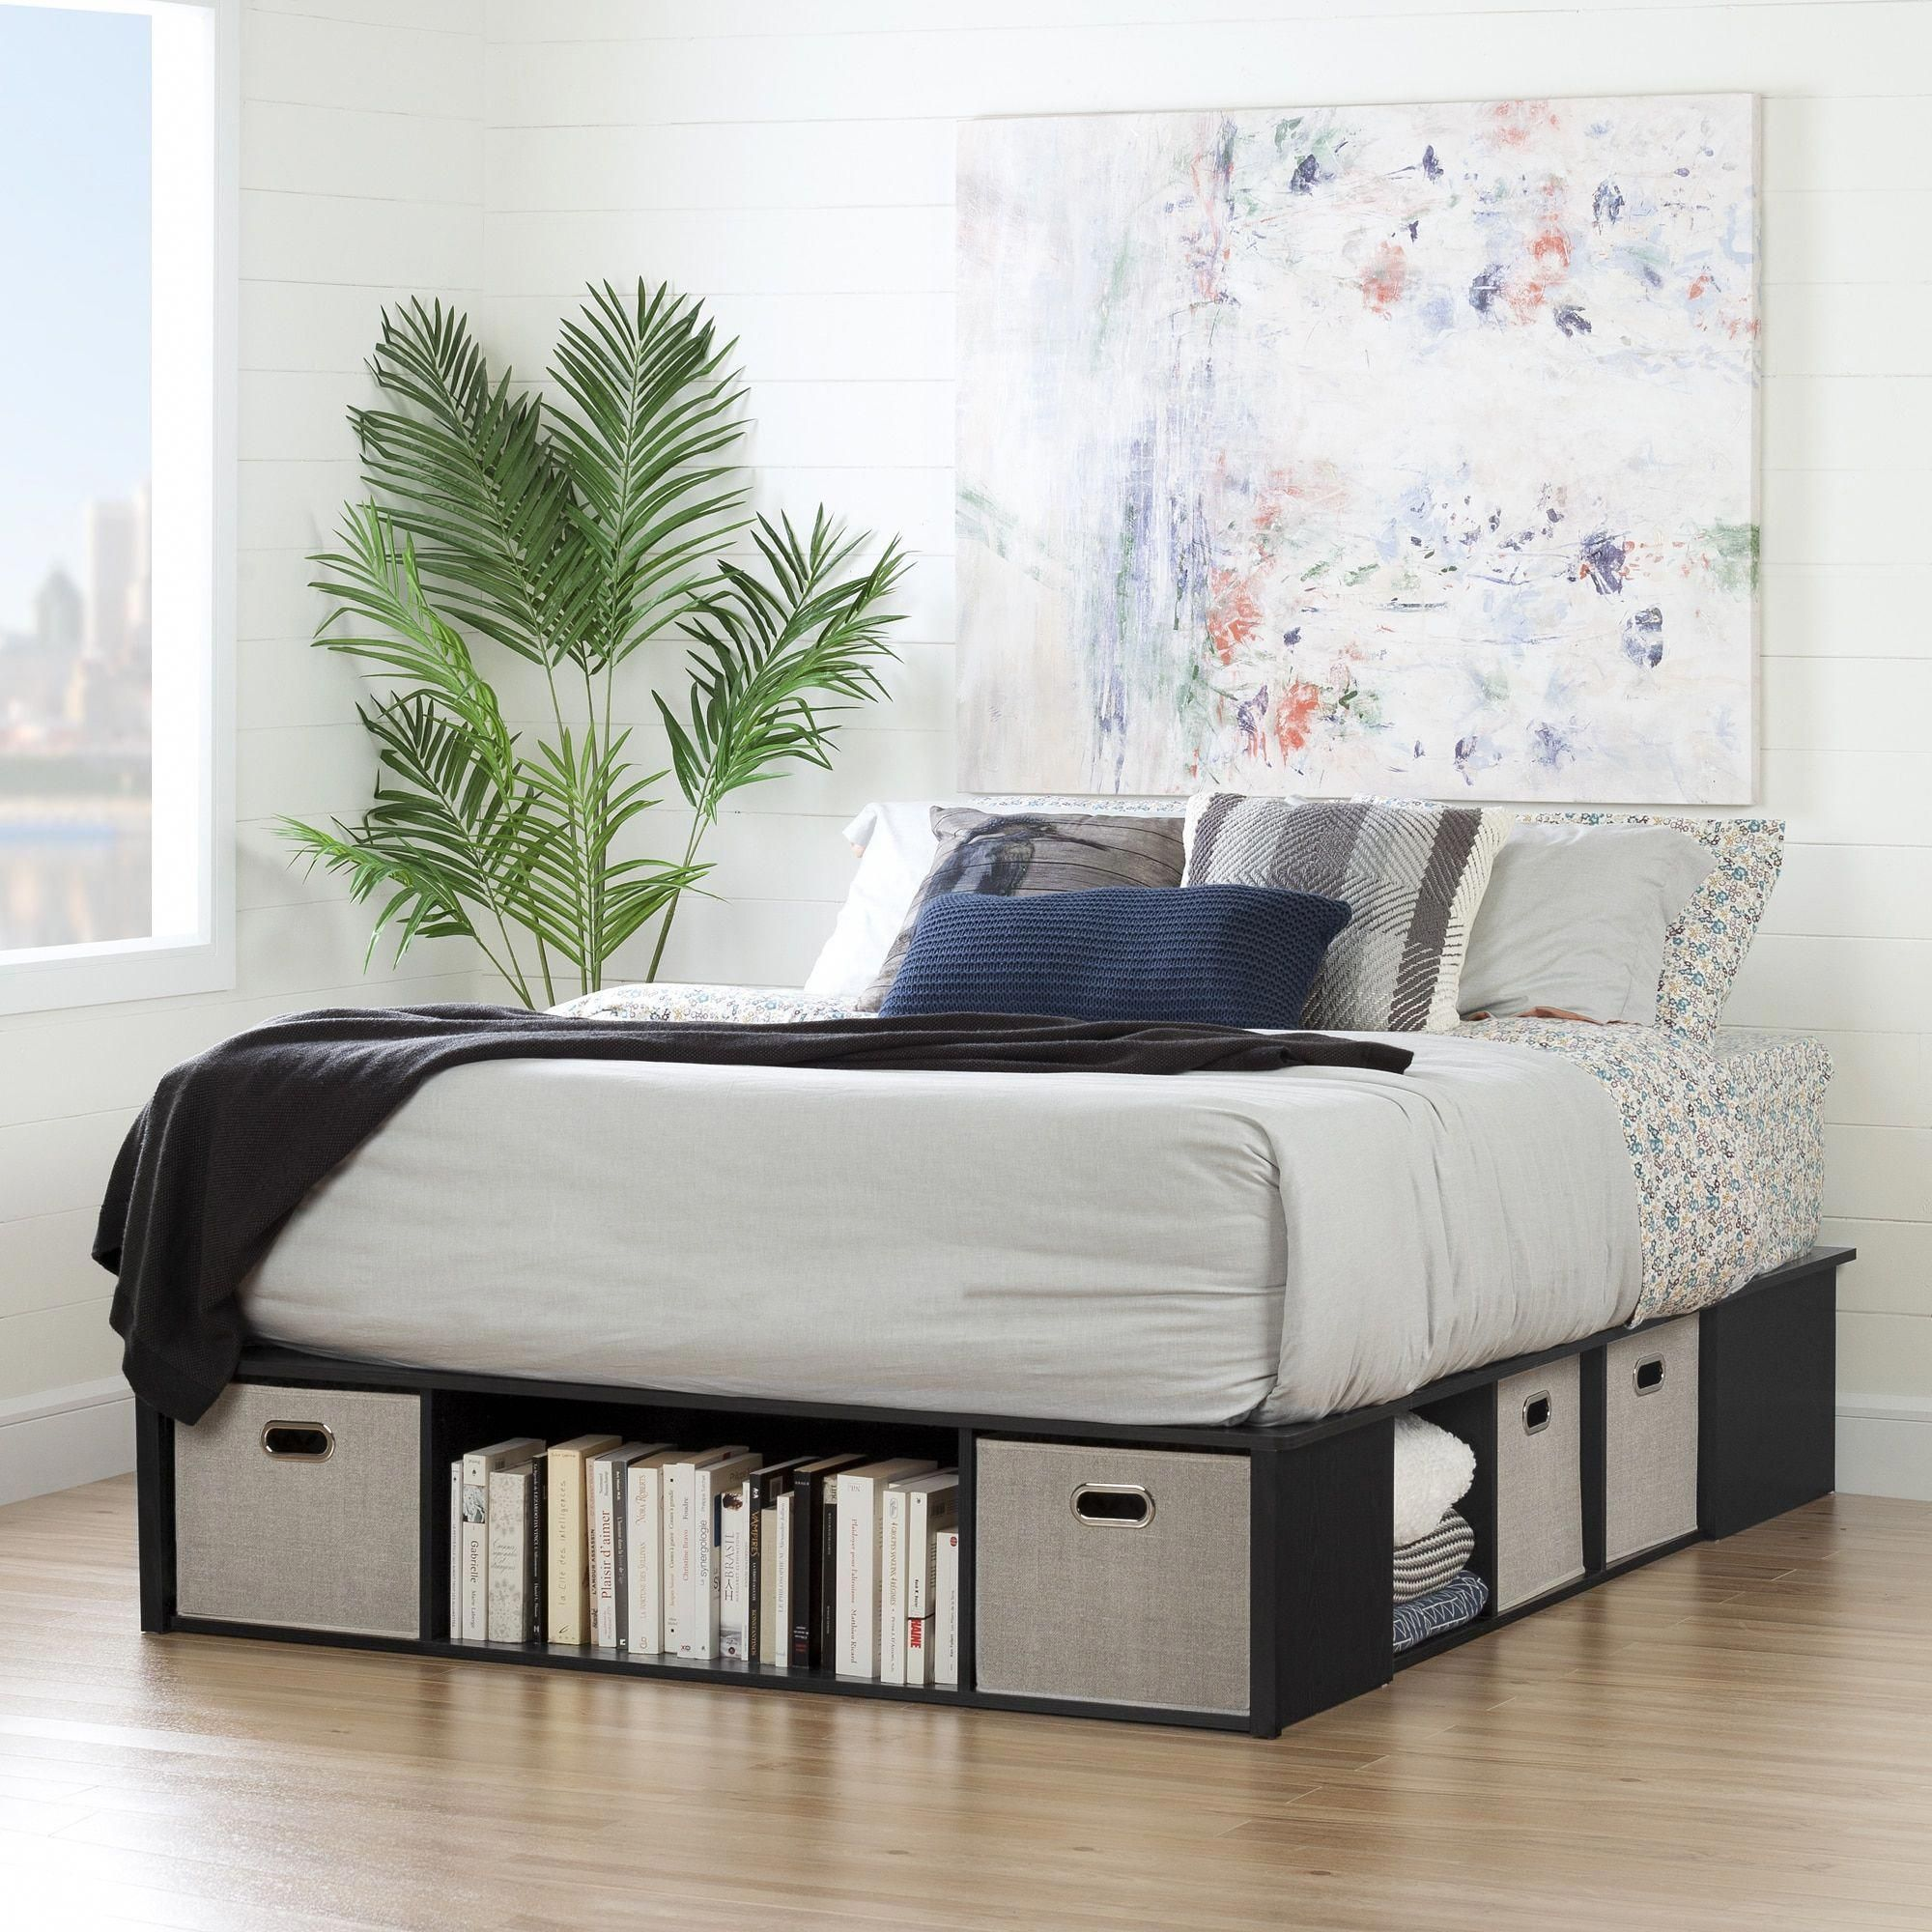 Hip suggestions to consider bedroomfurnituremodern in